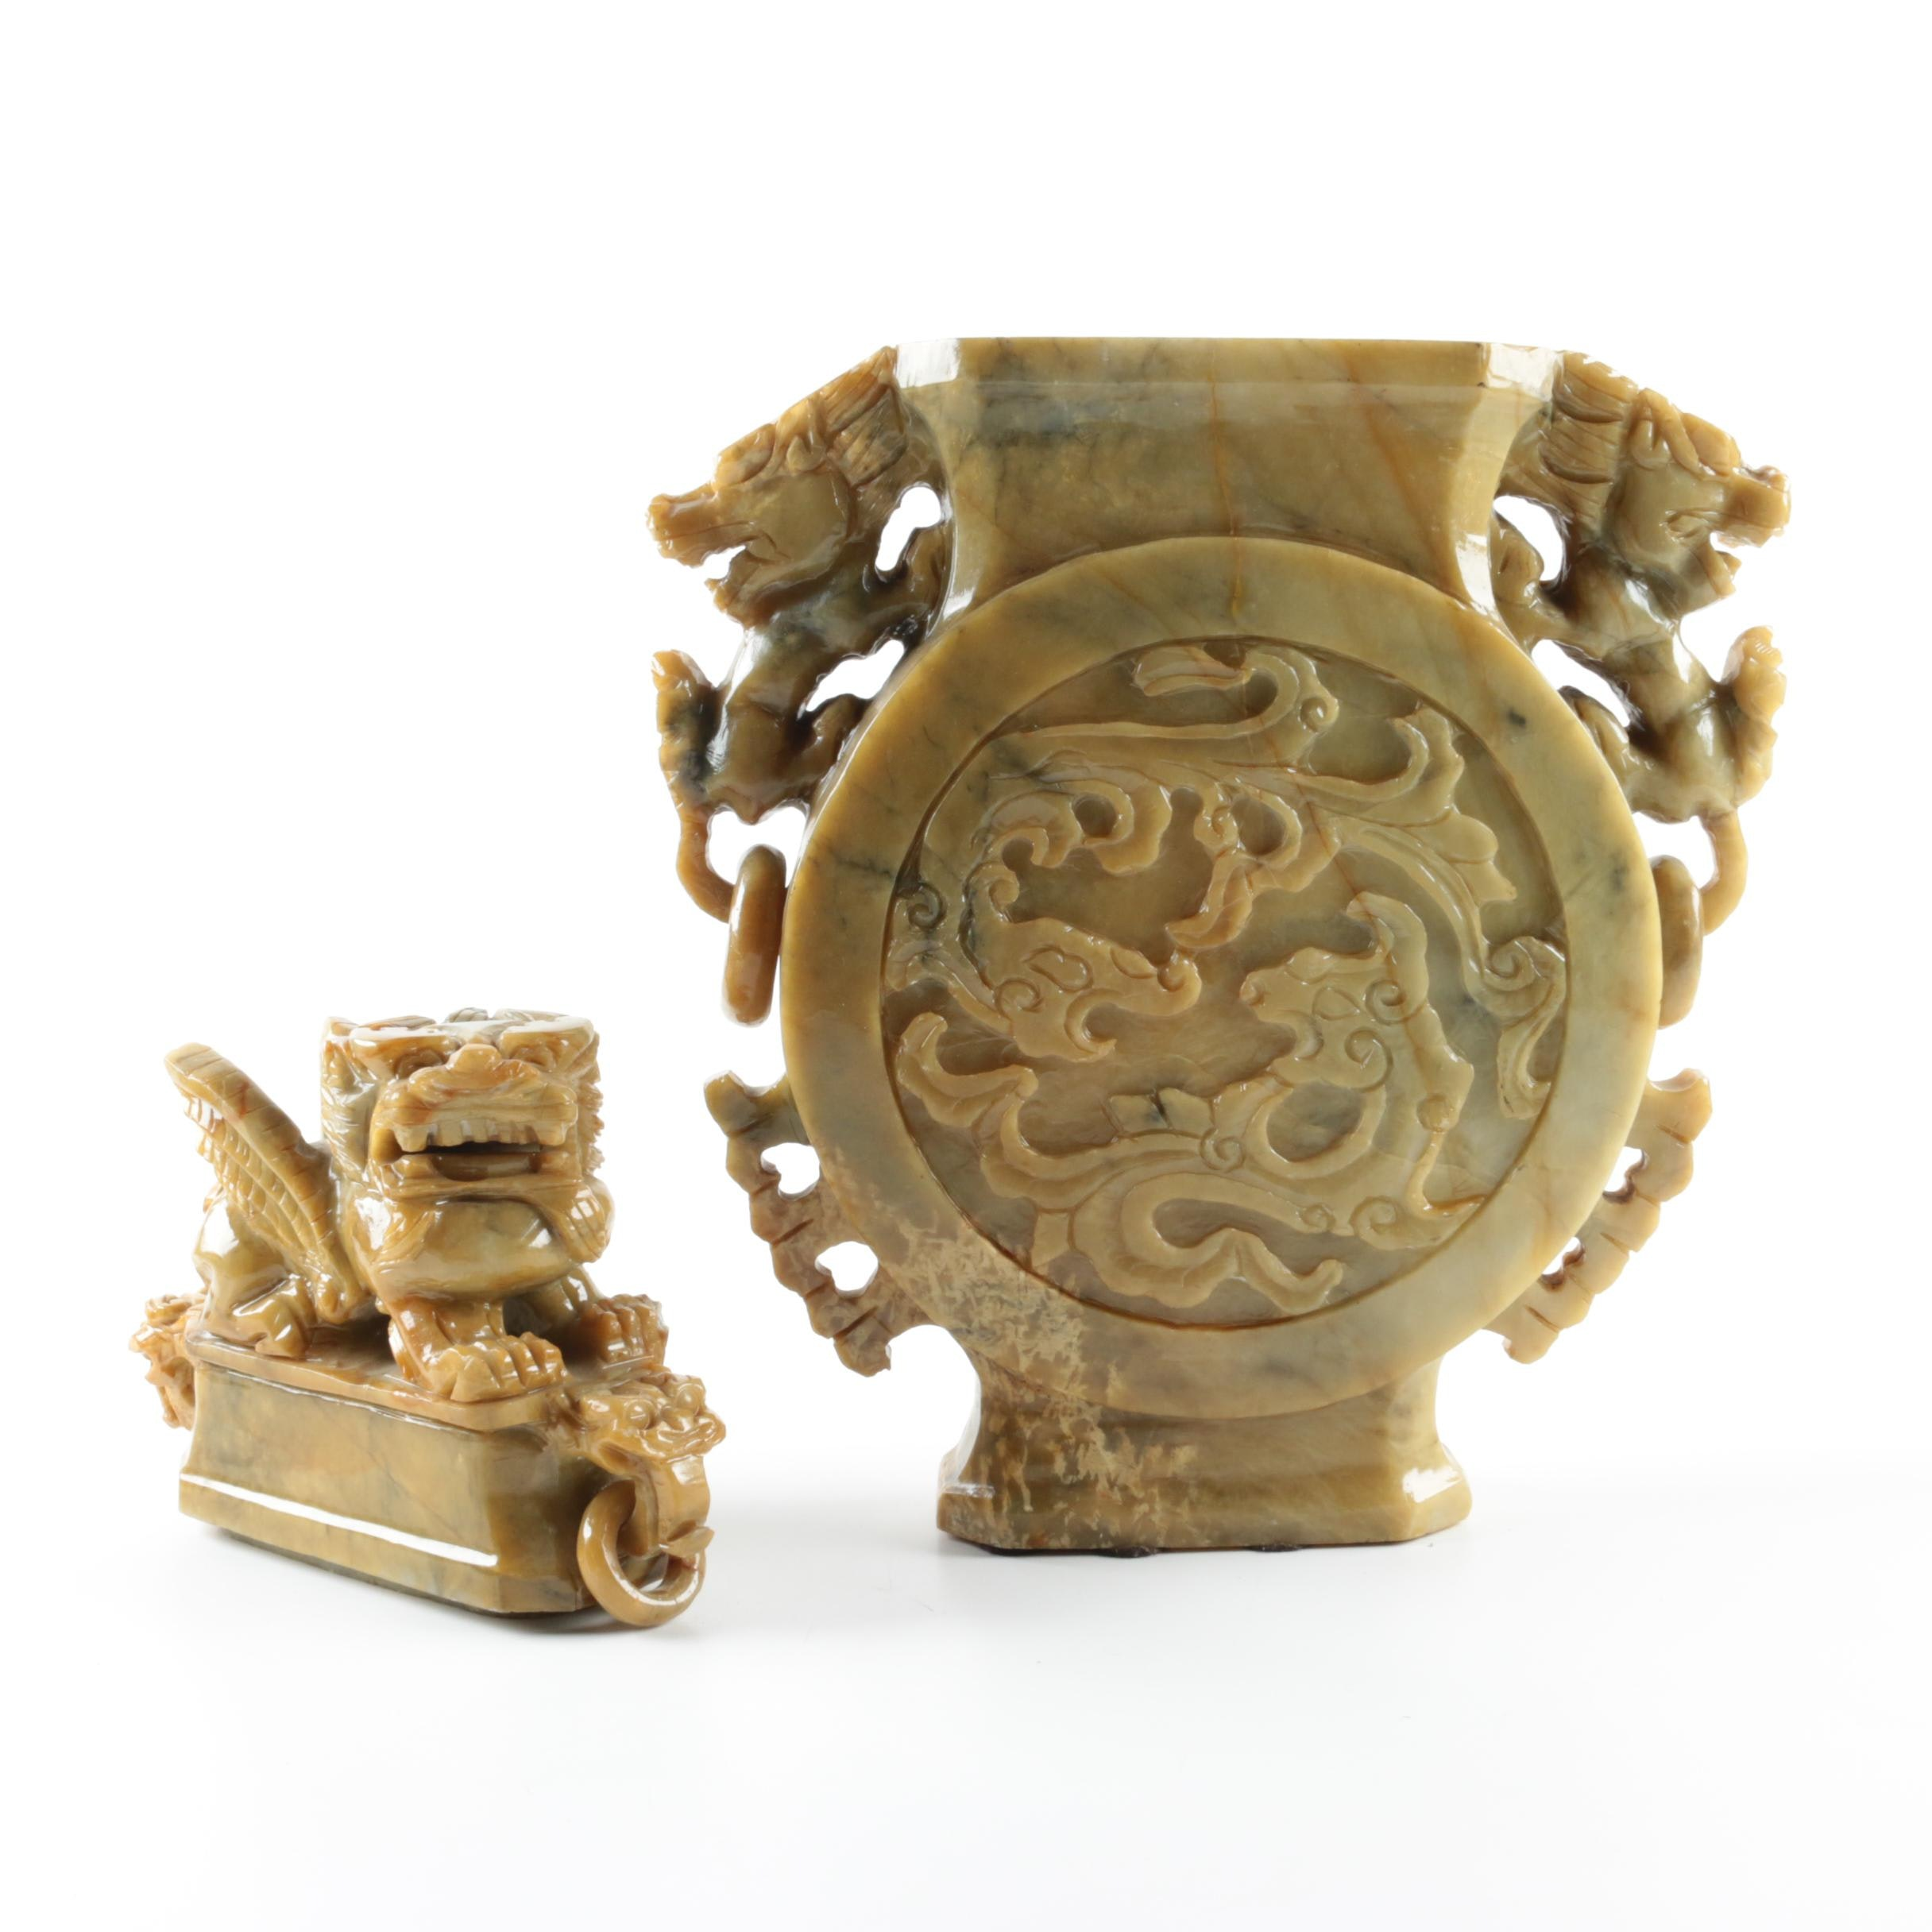 Chinese Carved Serpentine Lidded Vessel